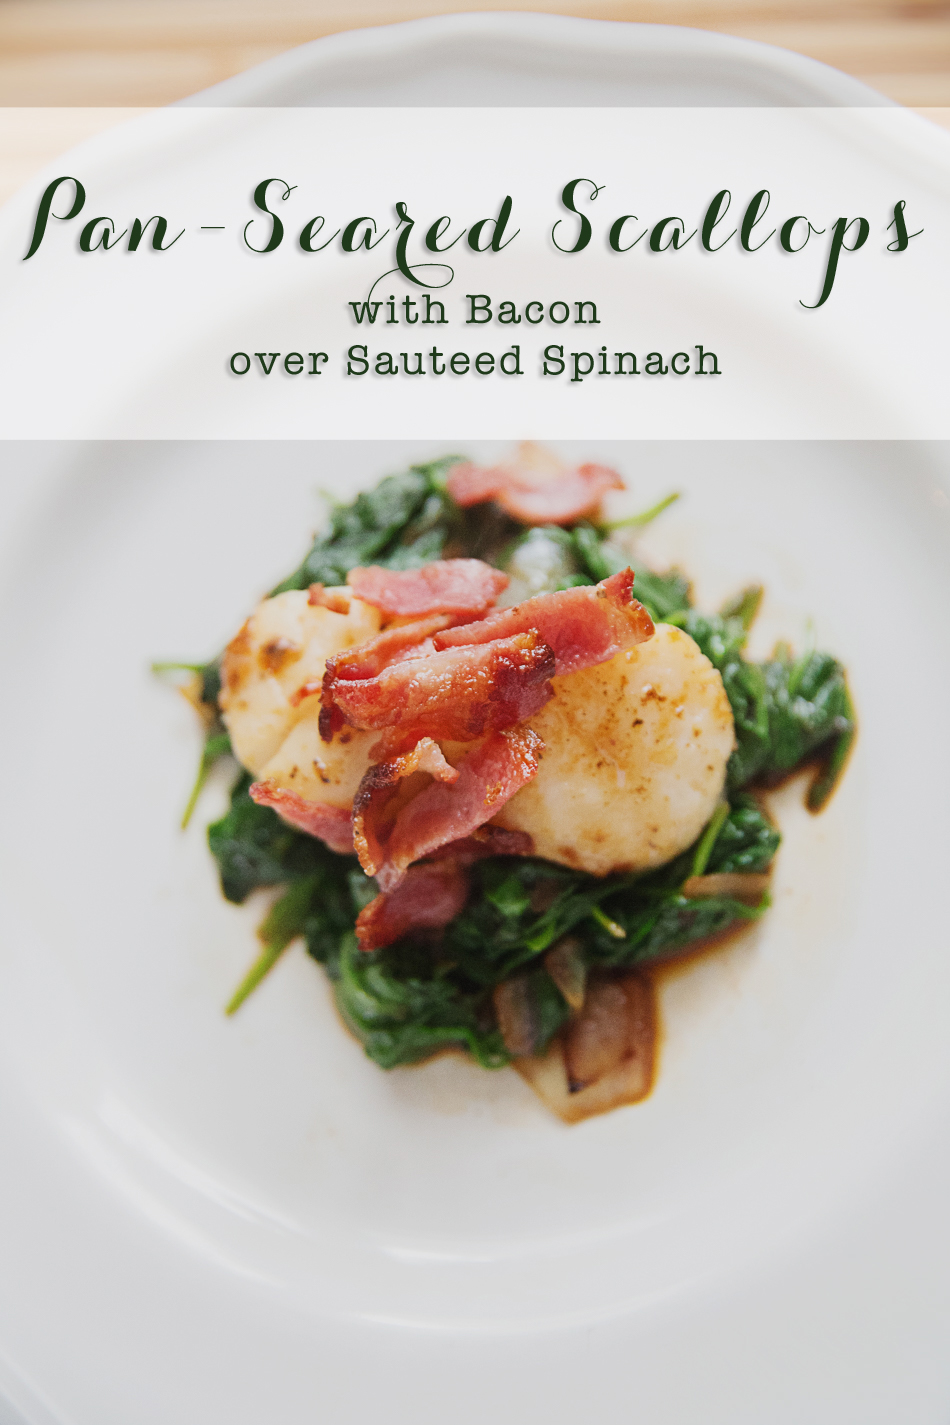 Scallops with Bacon Recipe